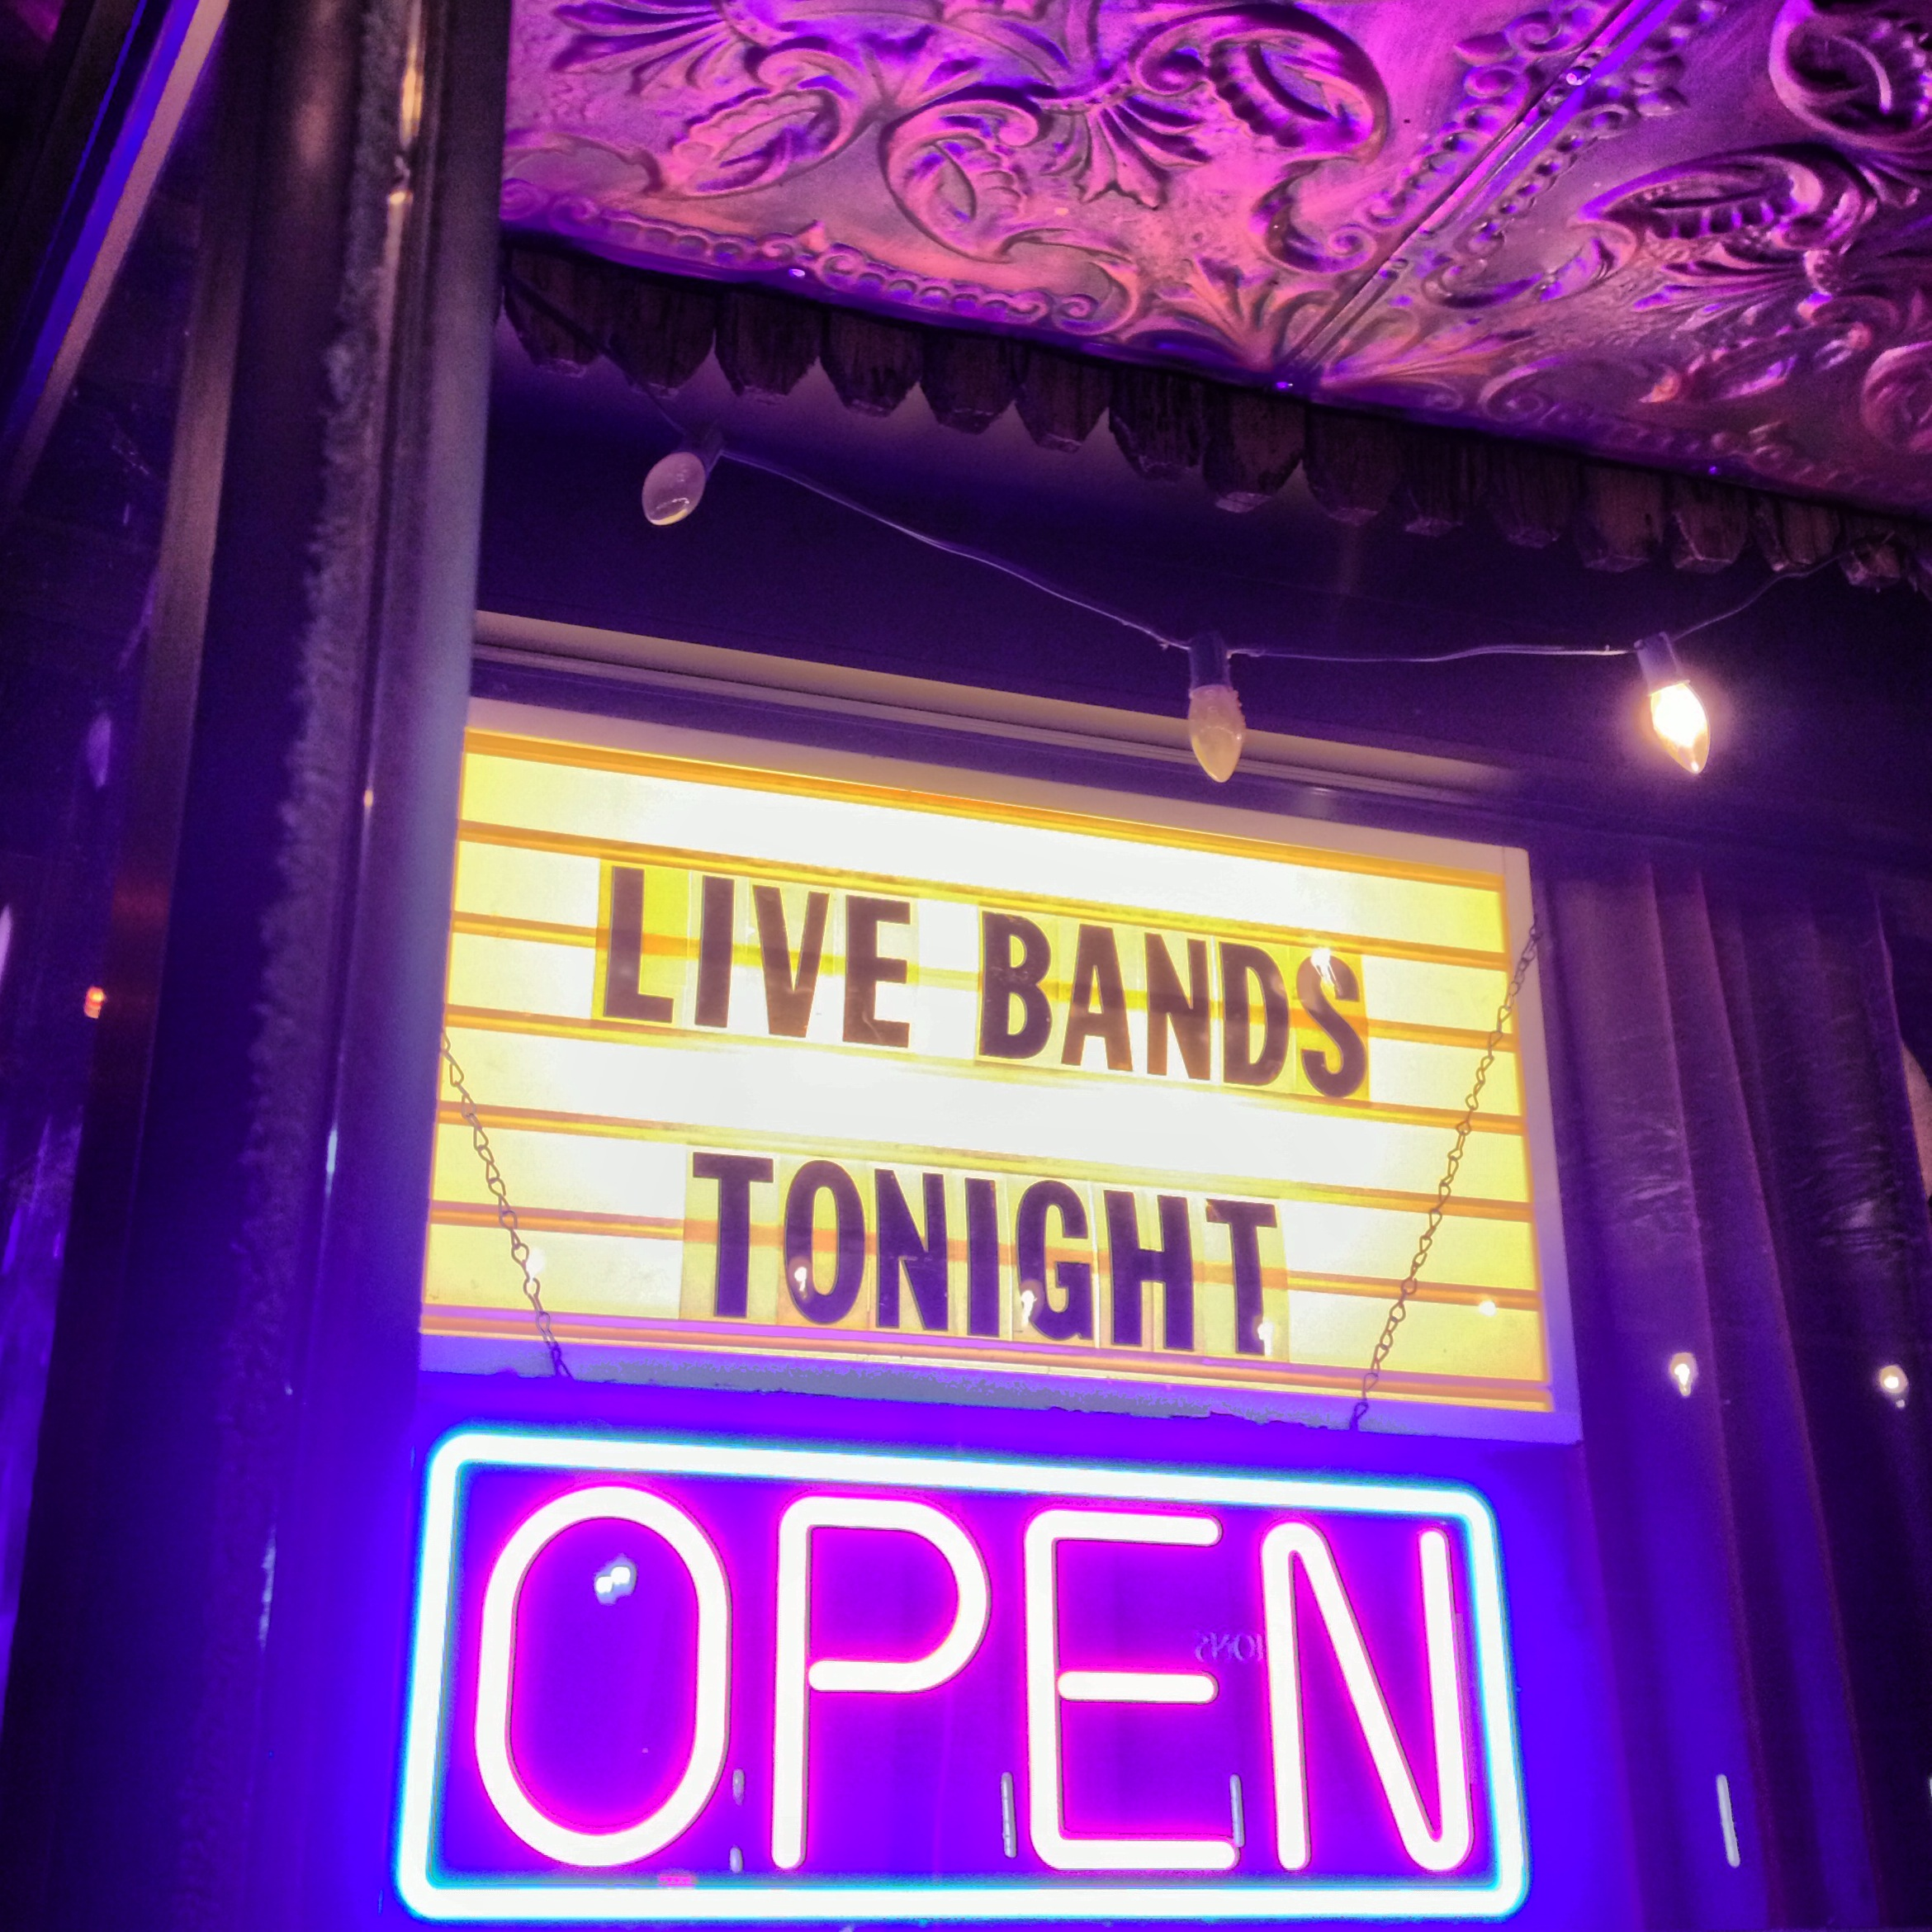 live bands tonight